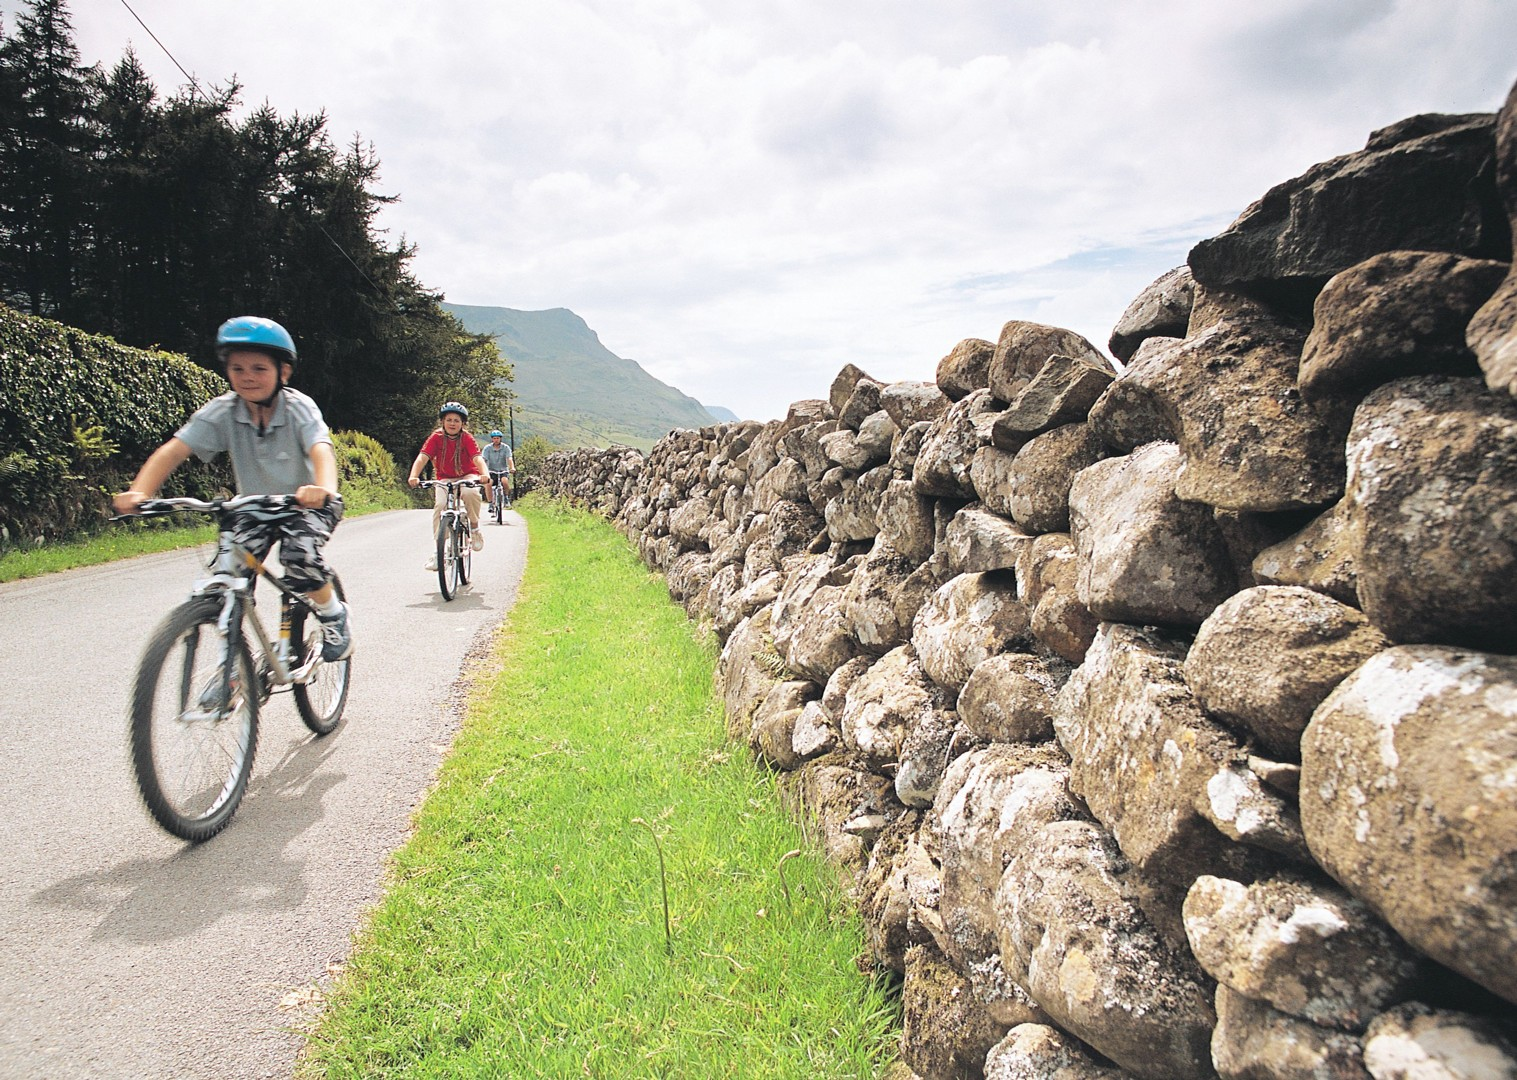 hadrians-wall-uk-explorer-cycling-holiday.jpg - UK - Highlights of Hadrian's Cycleway - Self-Guided Family Cycling Holiday - Family Cycling